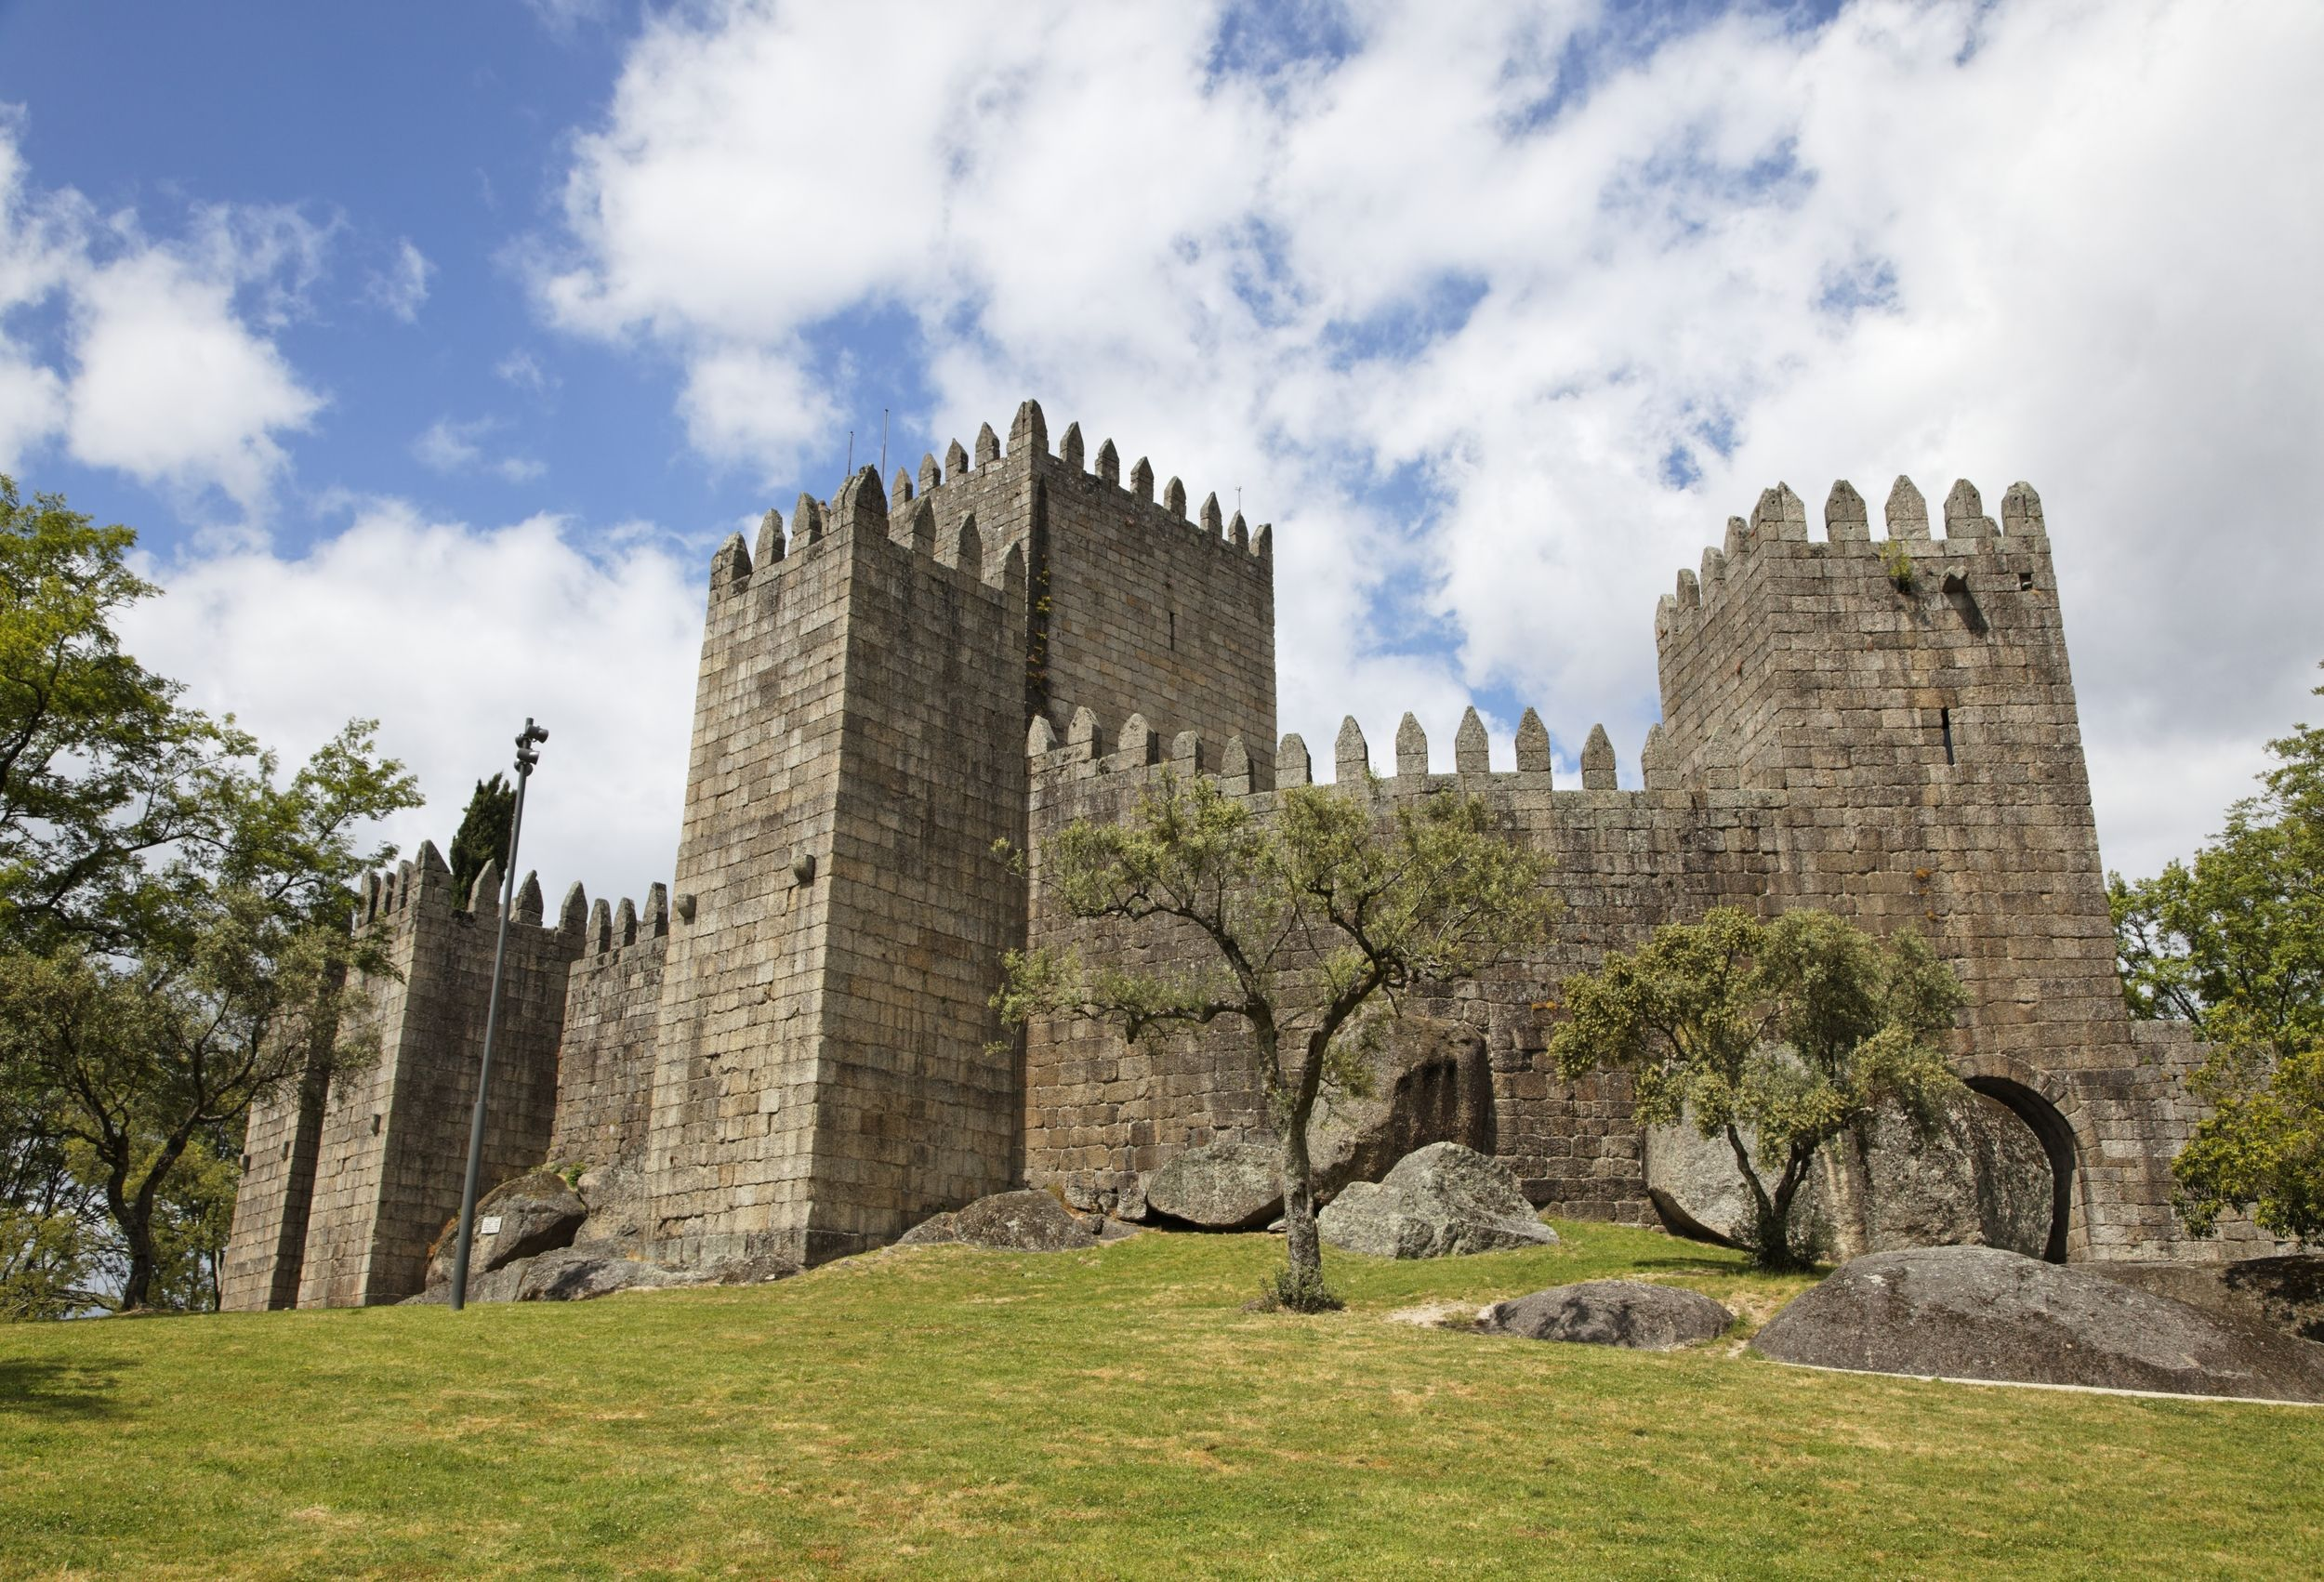 Guimaraes Castle - Portugal Photo: Getty  via @AOL_Lifestyle Read more: http://www.aol.com/article/2016/08/24/worlds-most-beautiful-castles/21458012/?a_dgi=aolshare_pinterest#fullscreen